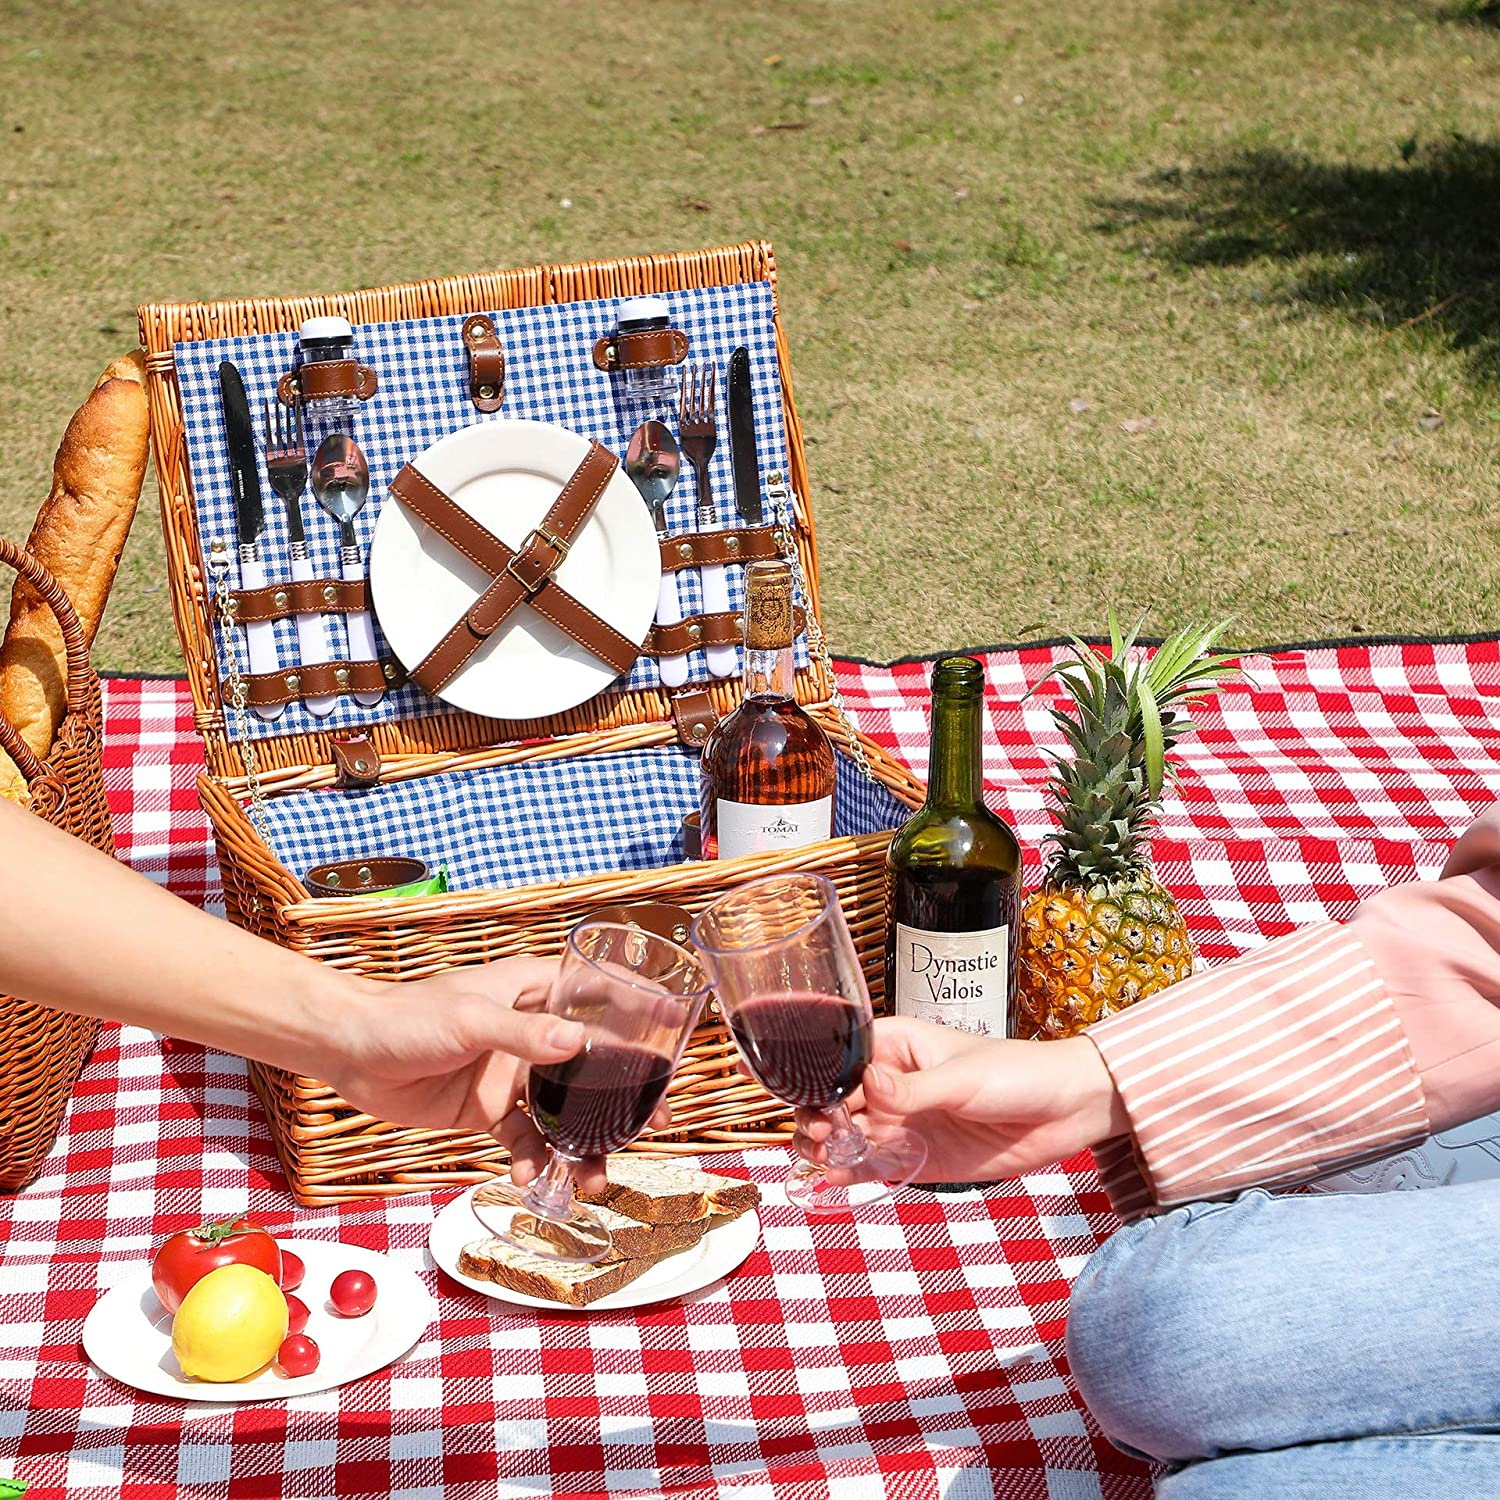 YMhoart Picnic Basket Max Same day shipping 48% OFF for 4 Picniking Willow Woven Empty Wicker